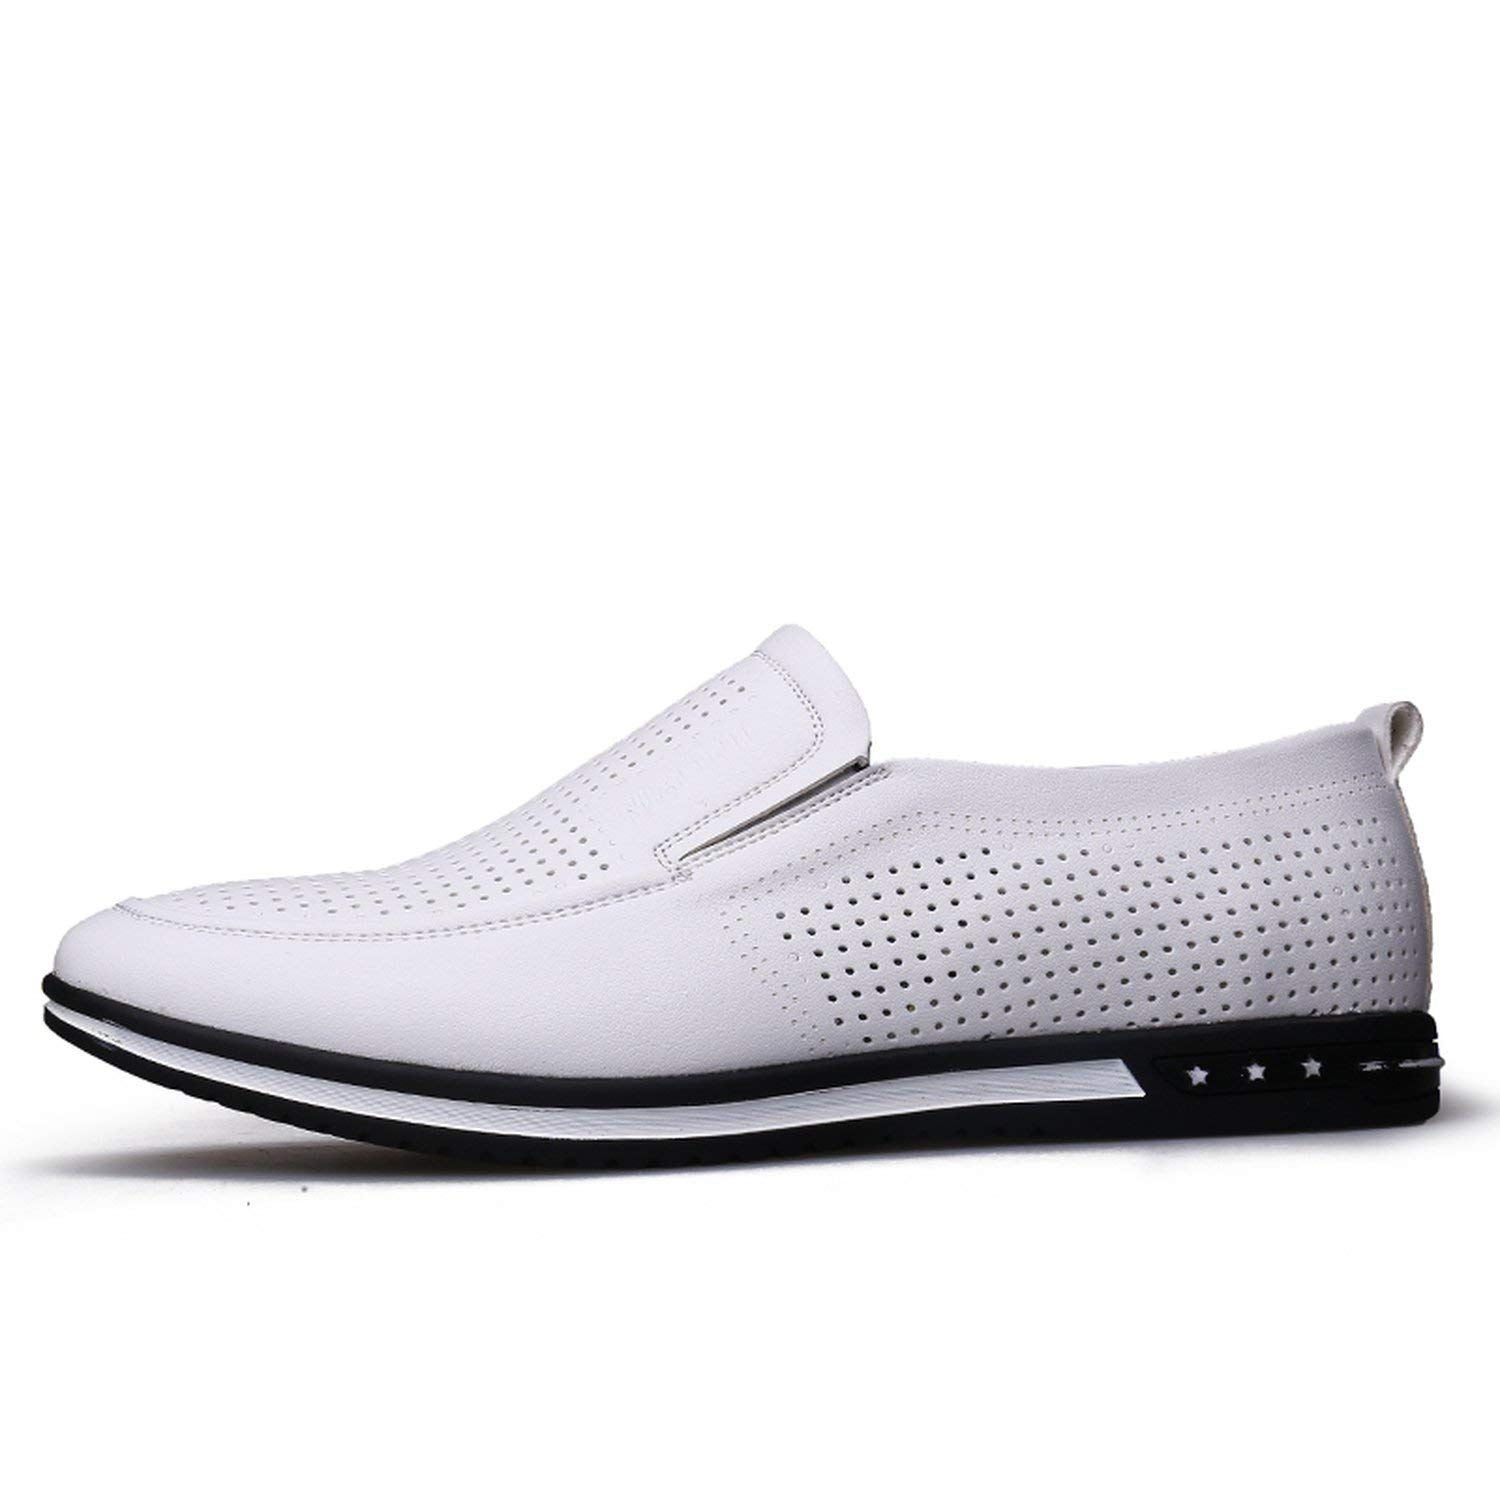 White hollow OH WHY Men's shoes Casual Leather Breathable Slip on Loafers Summer shoes Man Flat Driving shoes